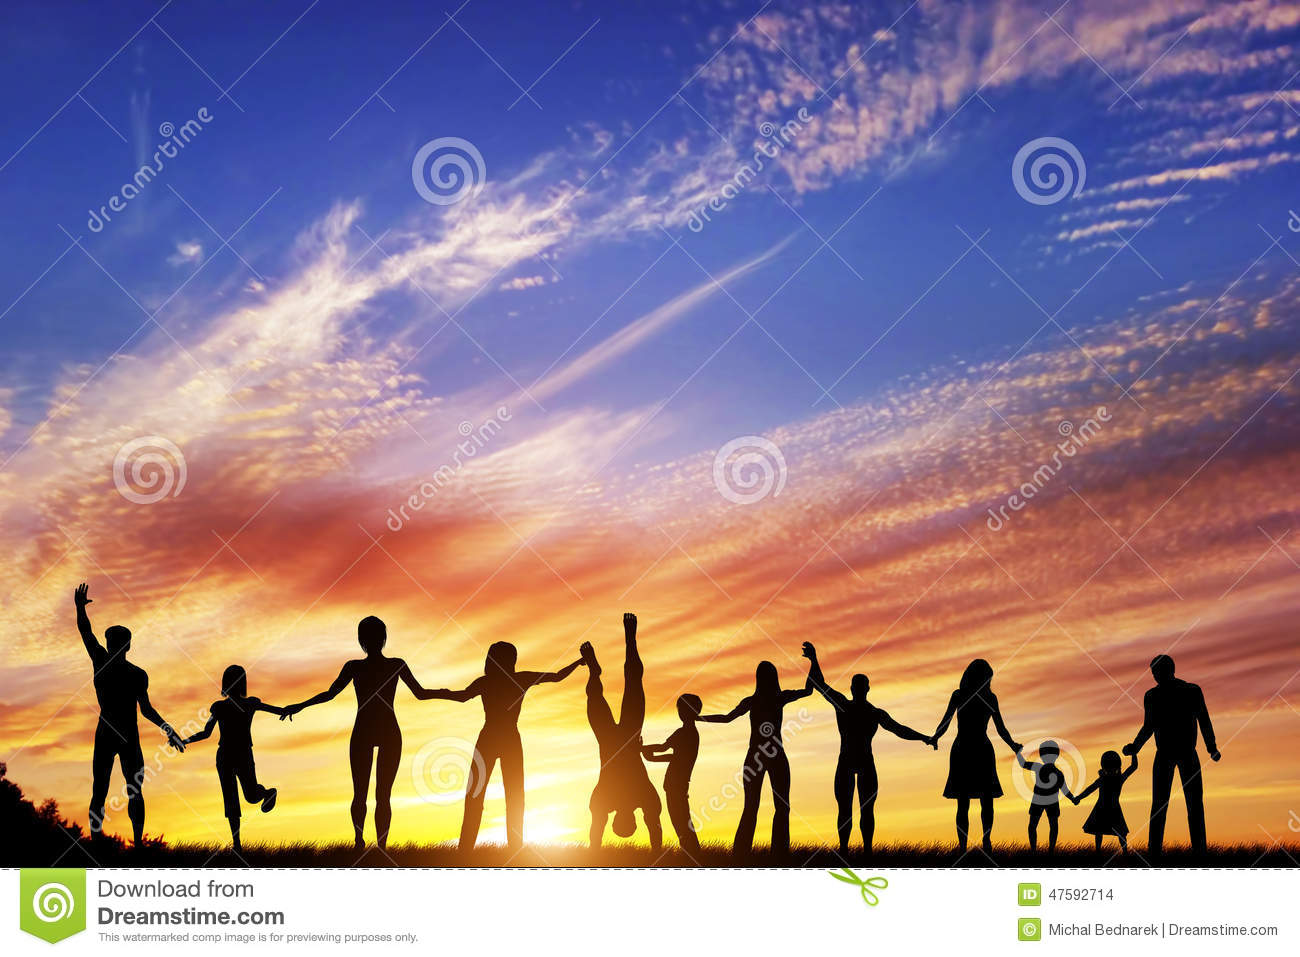 happy-group-diverse-people-friends-family-together-team-standing-holding-hands-celebrating-success-sunset-sky-47592714.jpg